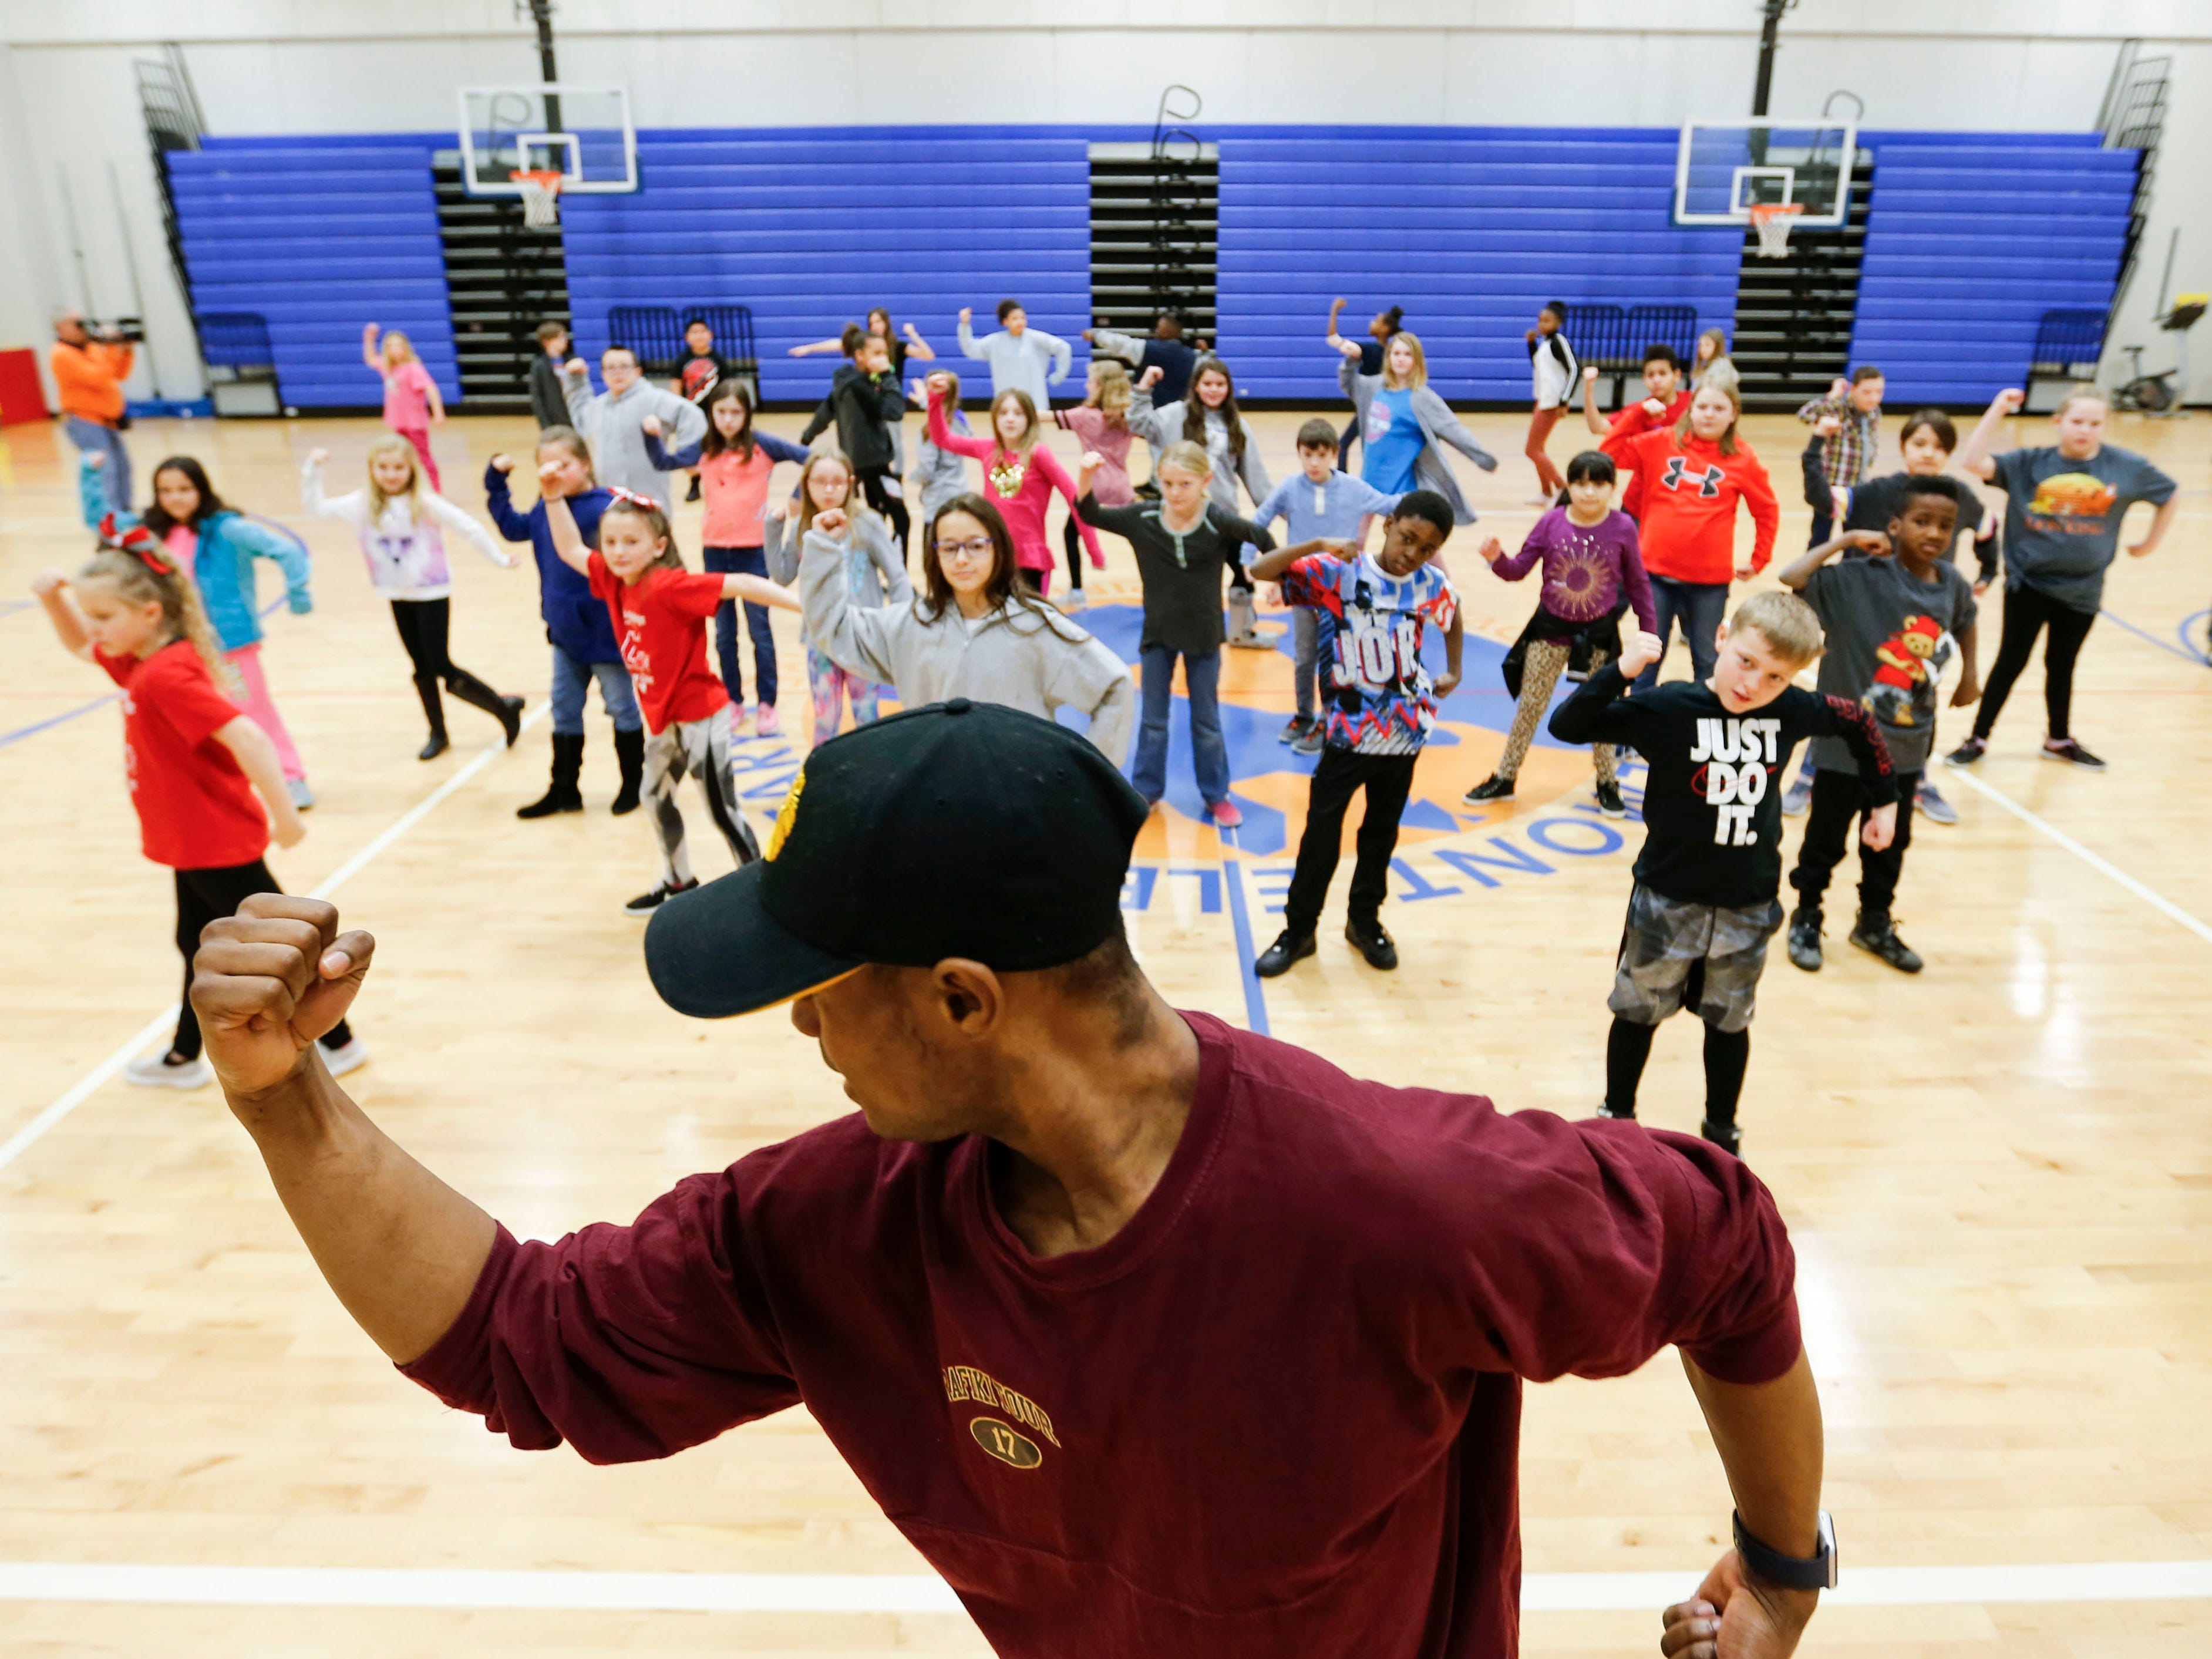 """""""Lion King"""" cast member Courtney Thomas teaches dance moves to students at Fremont Elementary as part of Disney's Get Up and Go Workshop on Tuesday, March 5, 2019."""